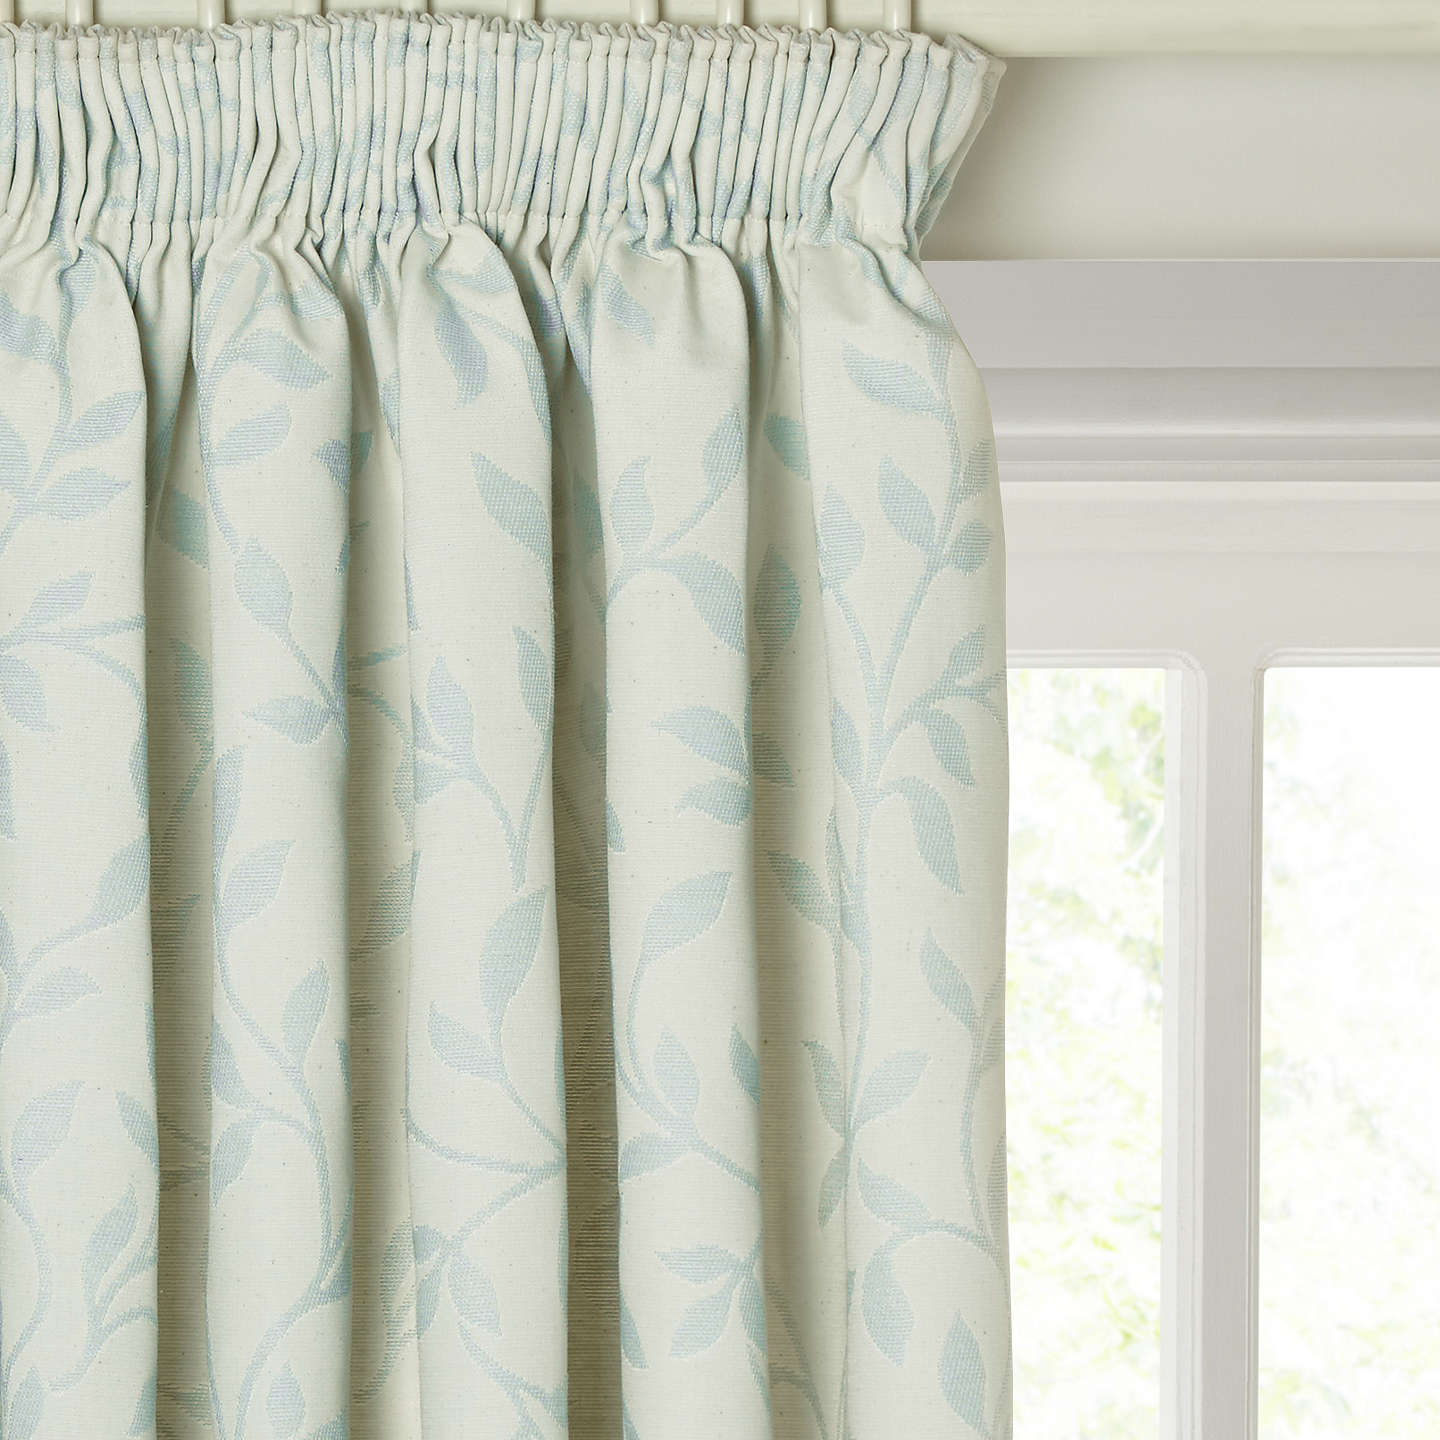 BuyJohn Lewis Cotton Linen Leaf Trail Pair Lined Pencil Pleat Curtains Duck Egg W260